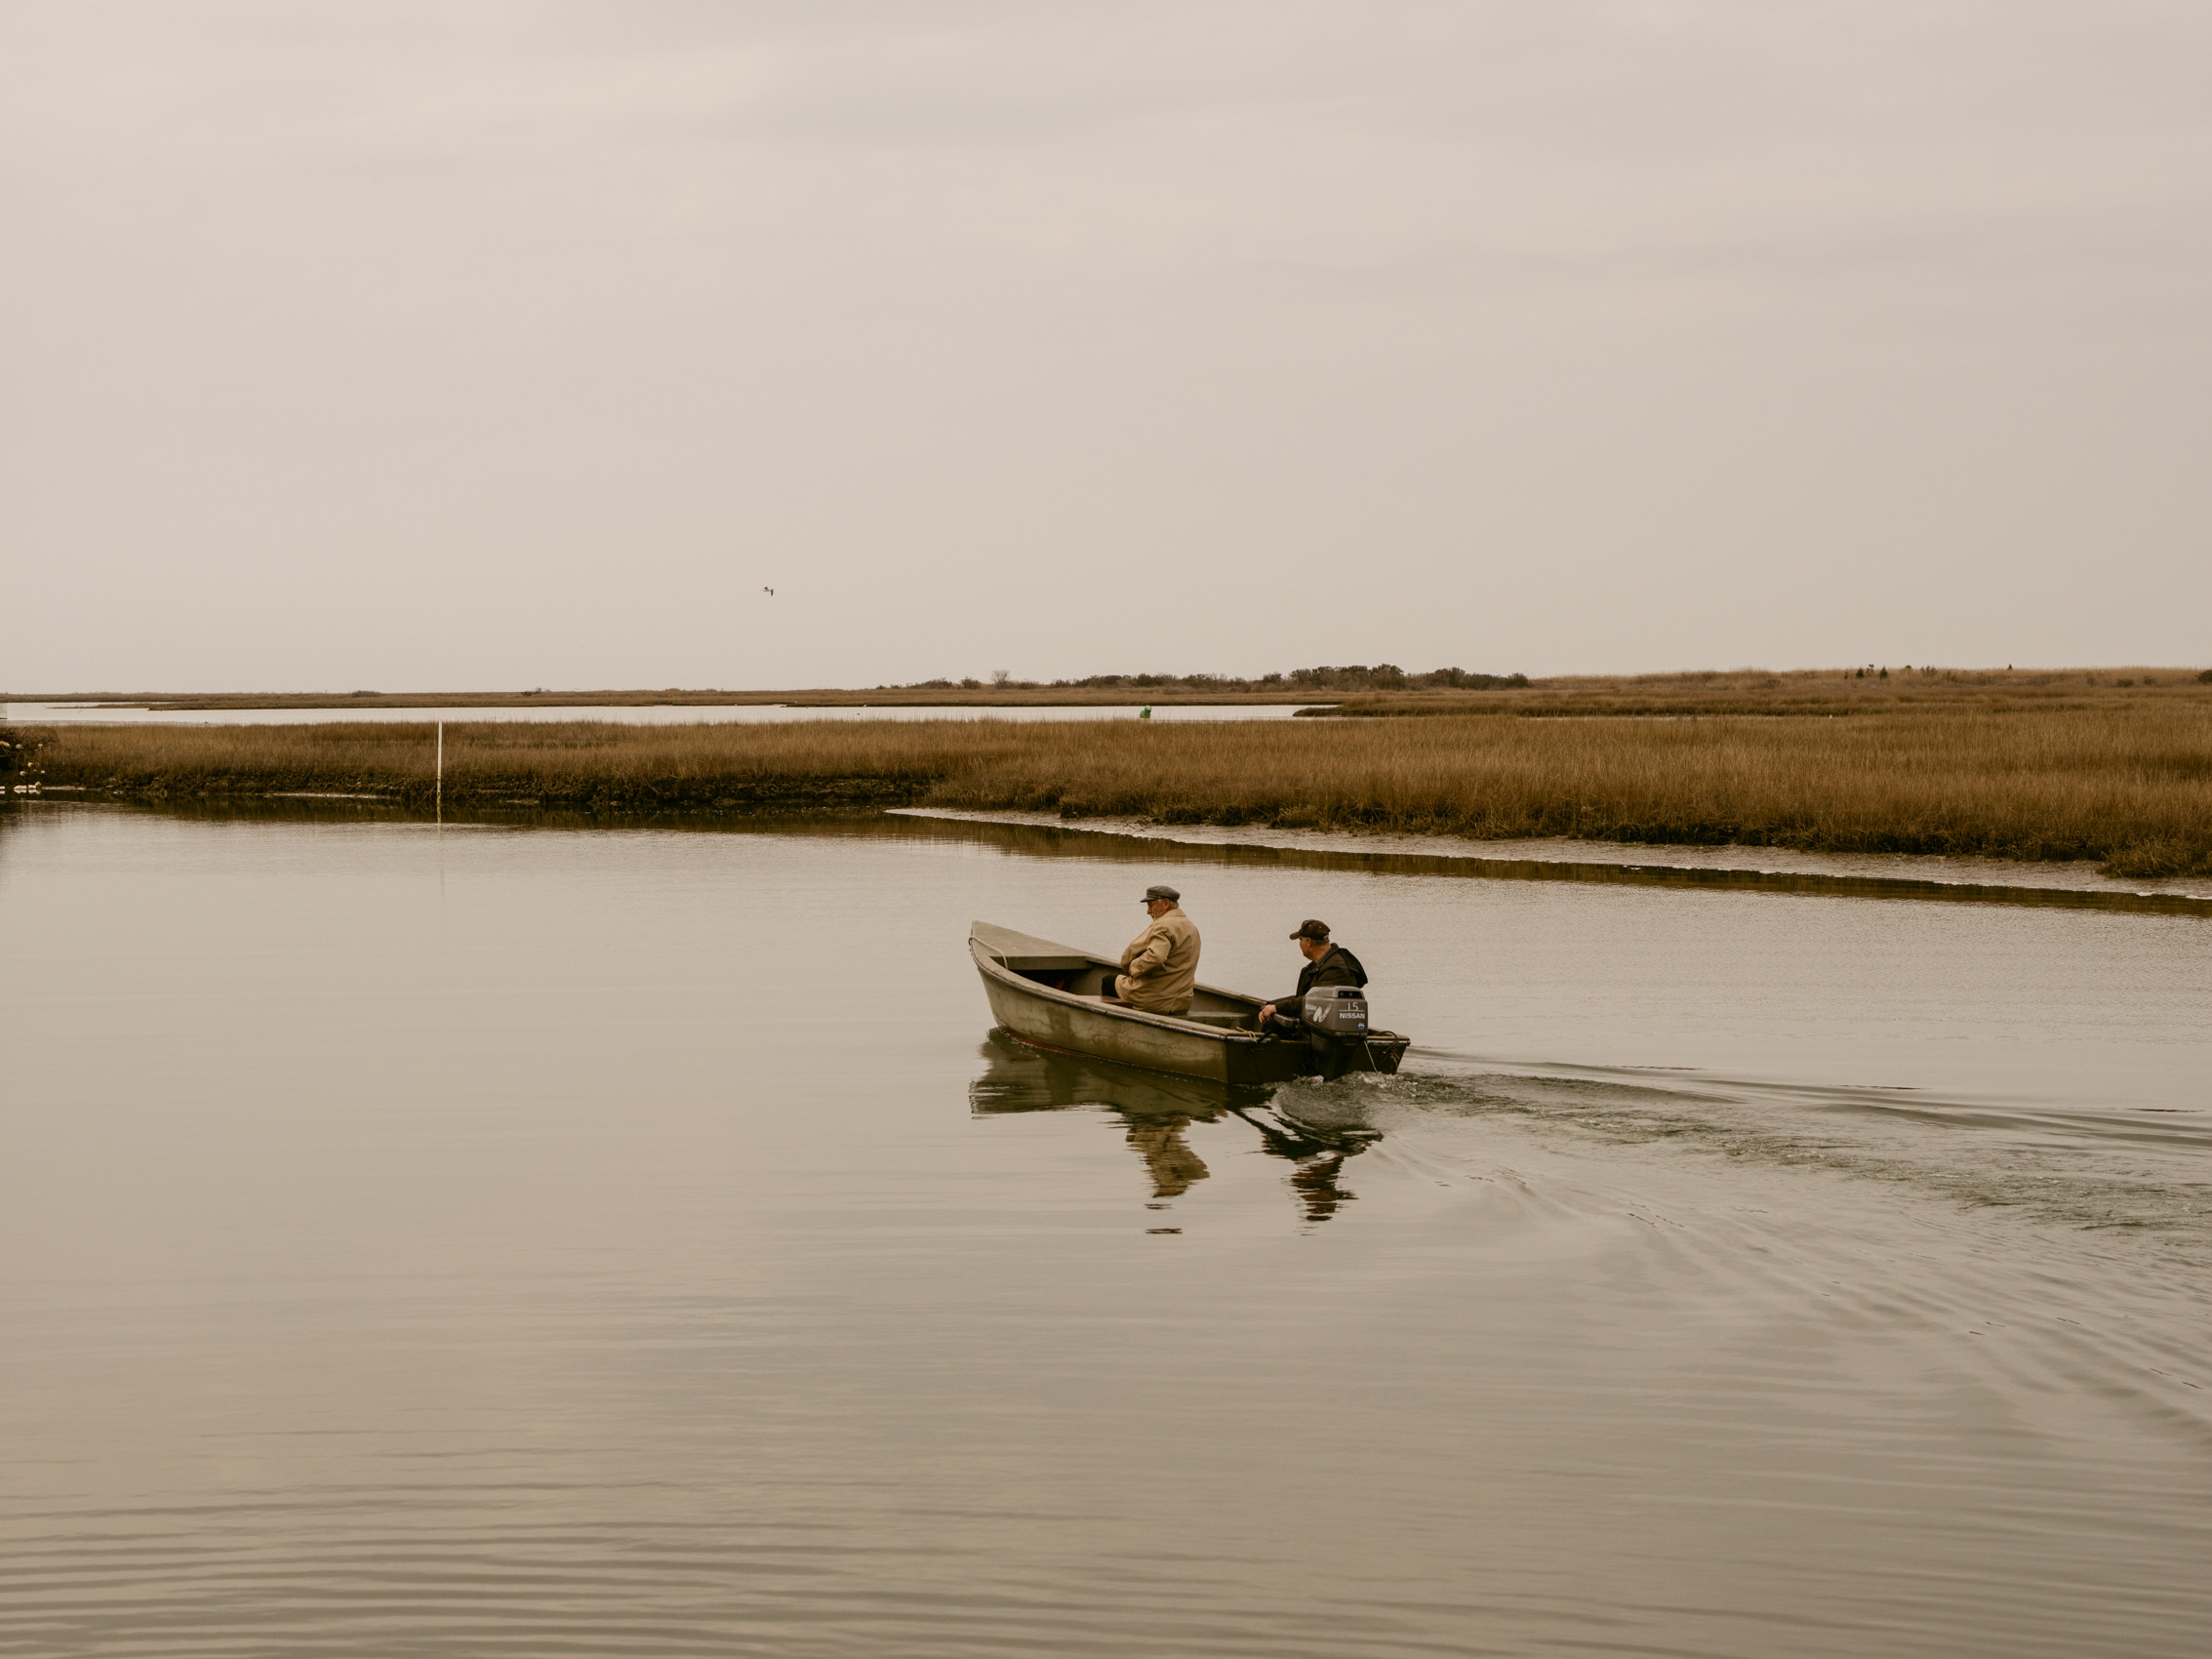 two men on boat in calm water through marsh